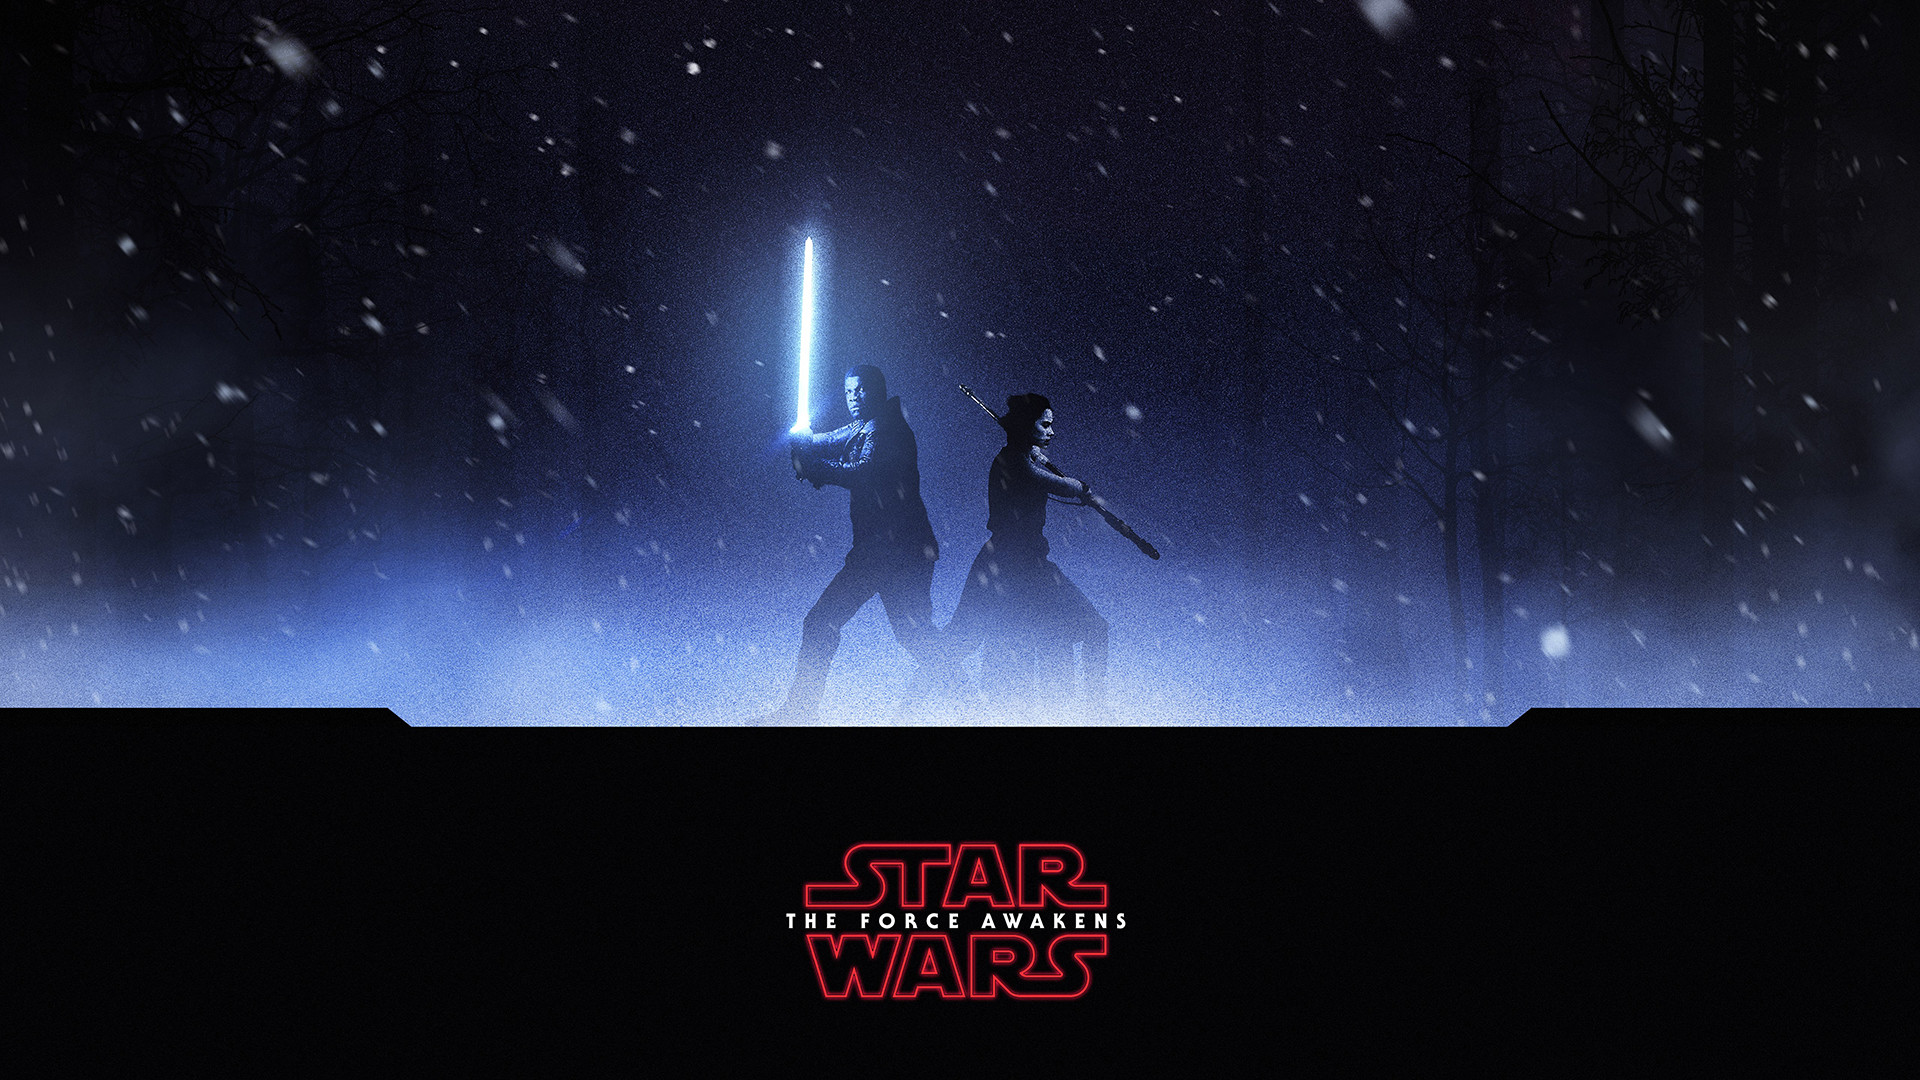 Star Wars The Force Awakens Wallpapers (70+ Images